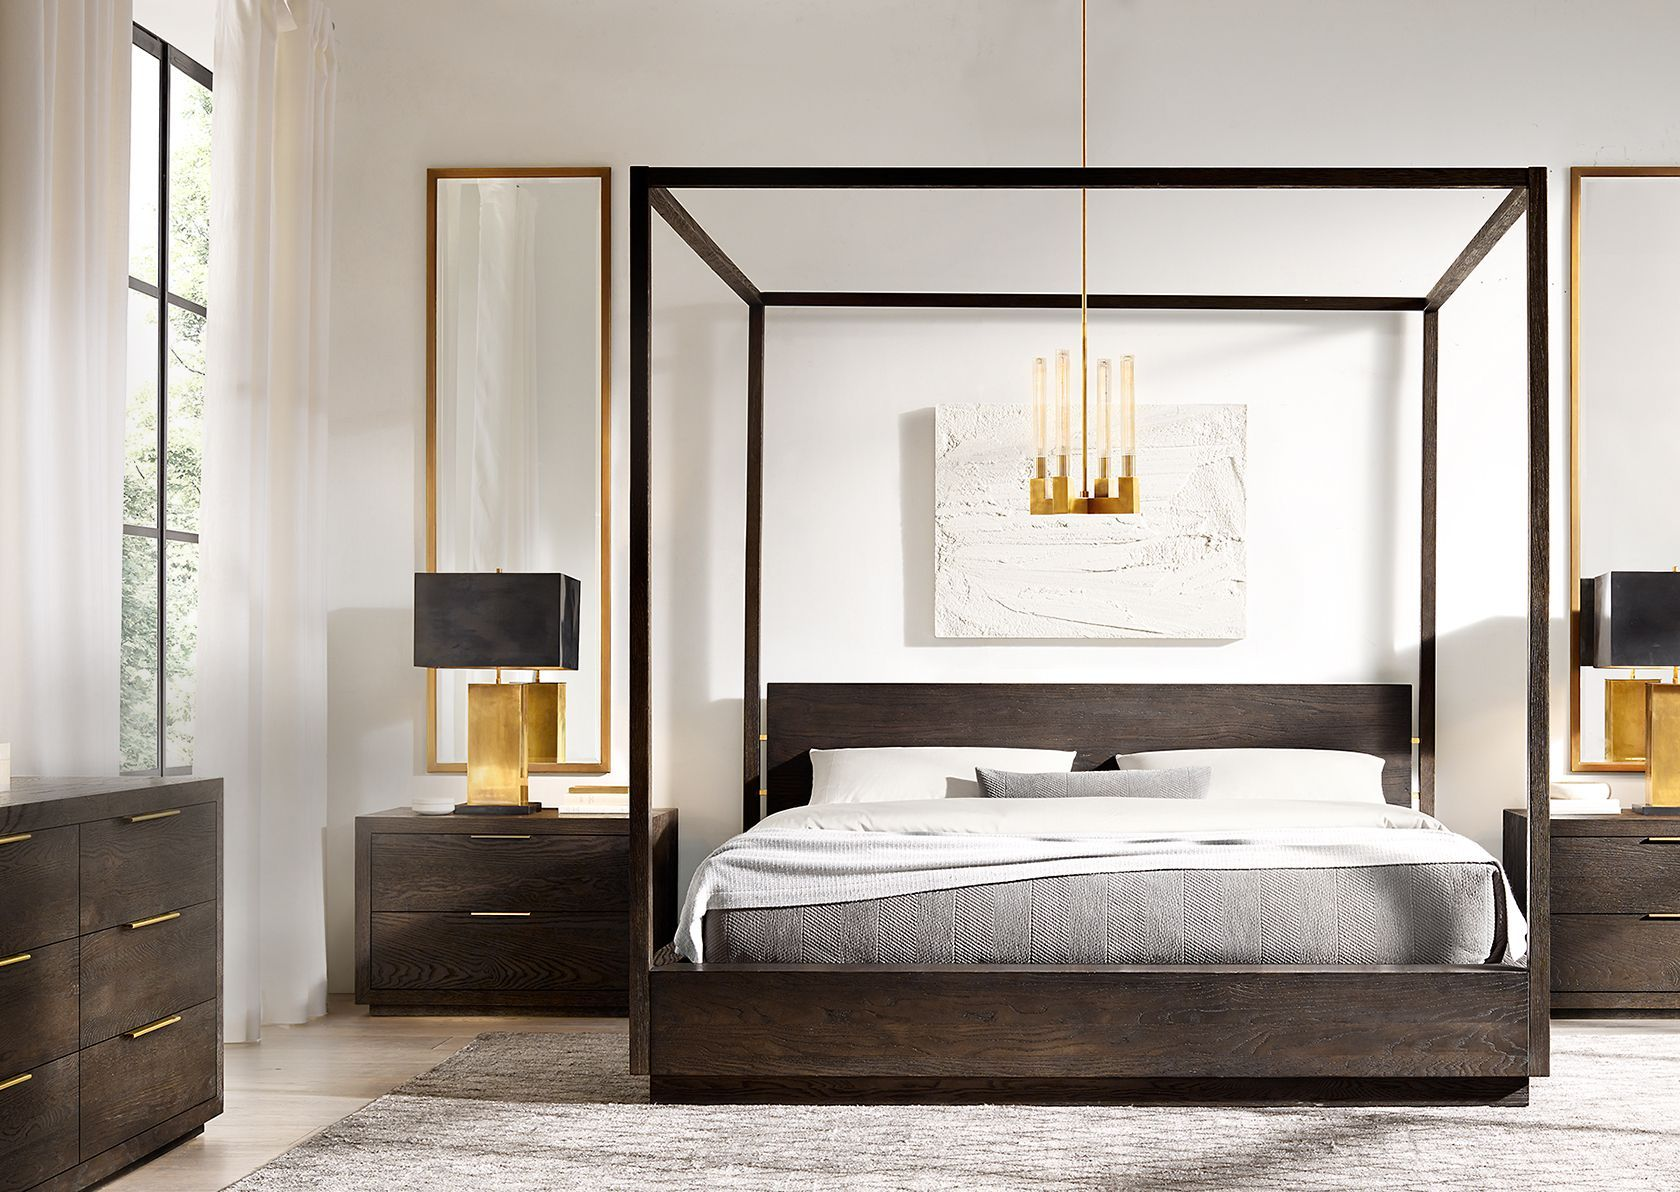 Restoration hardware bedroom image by Ana M. on Apartment